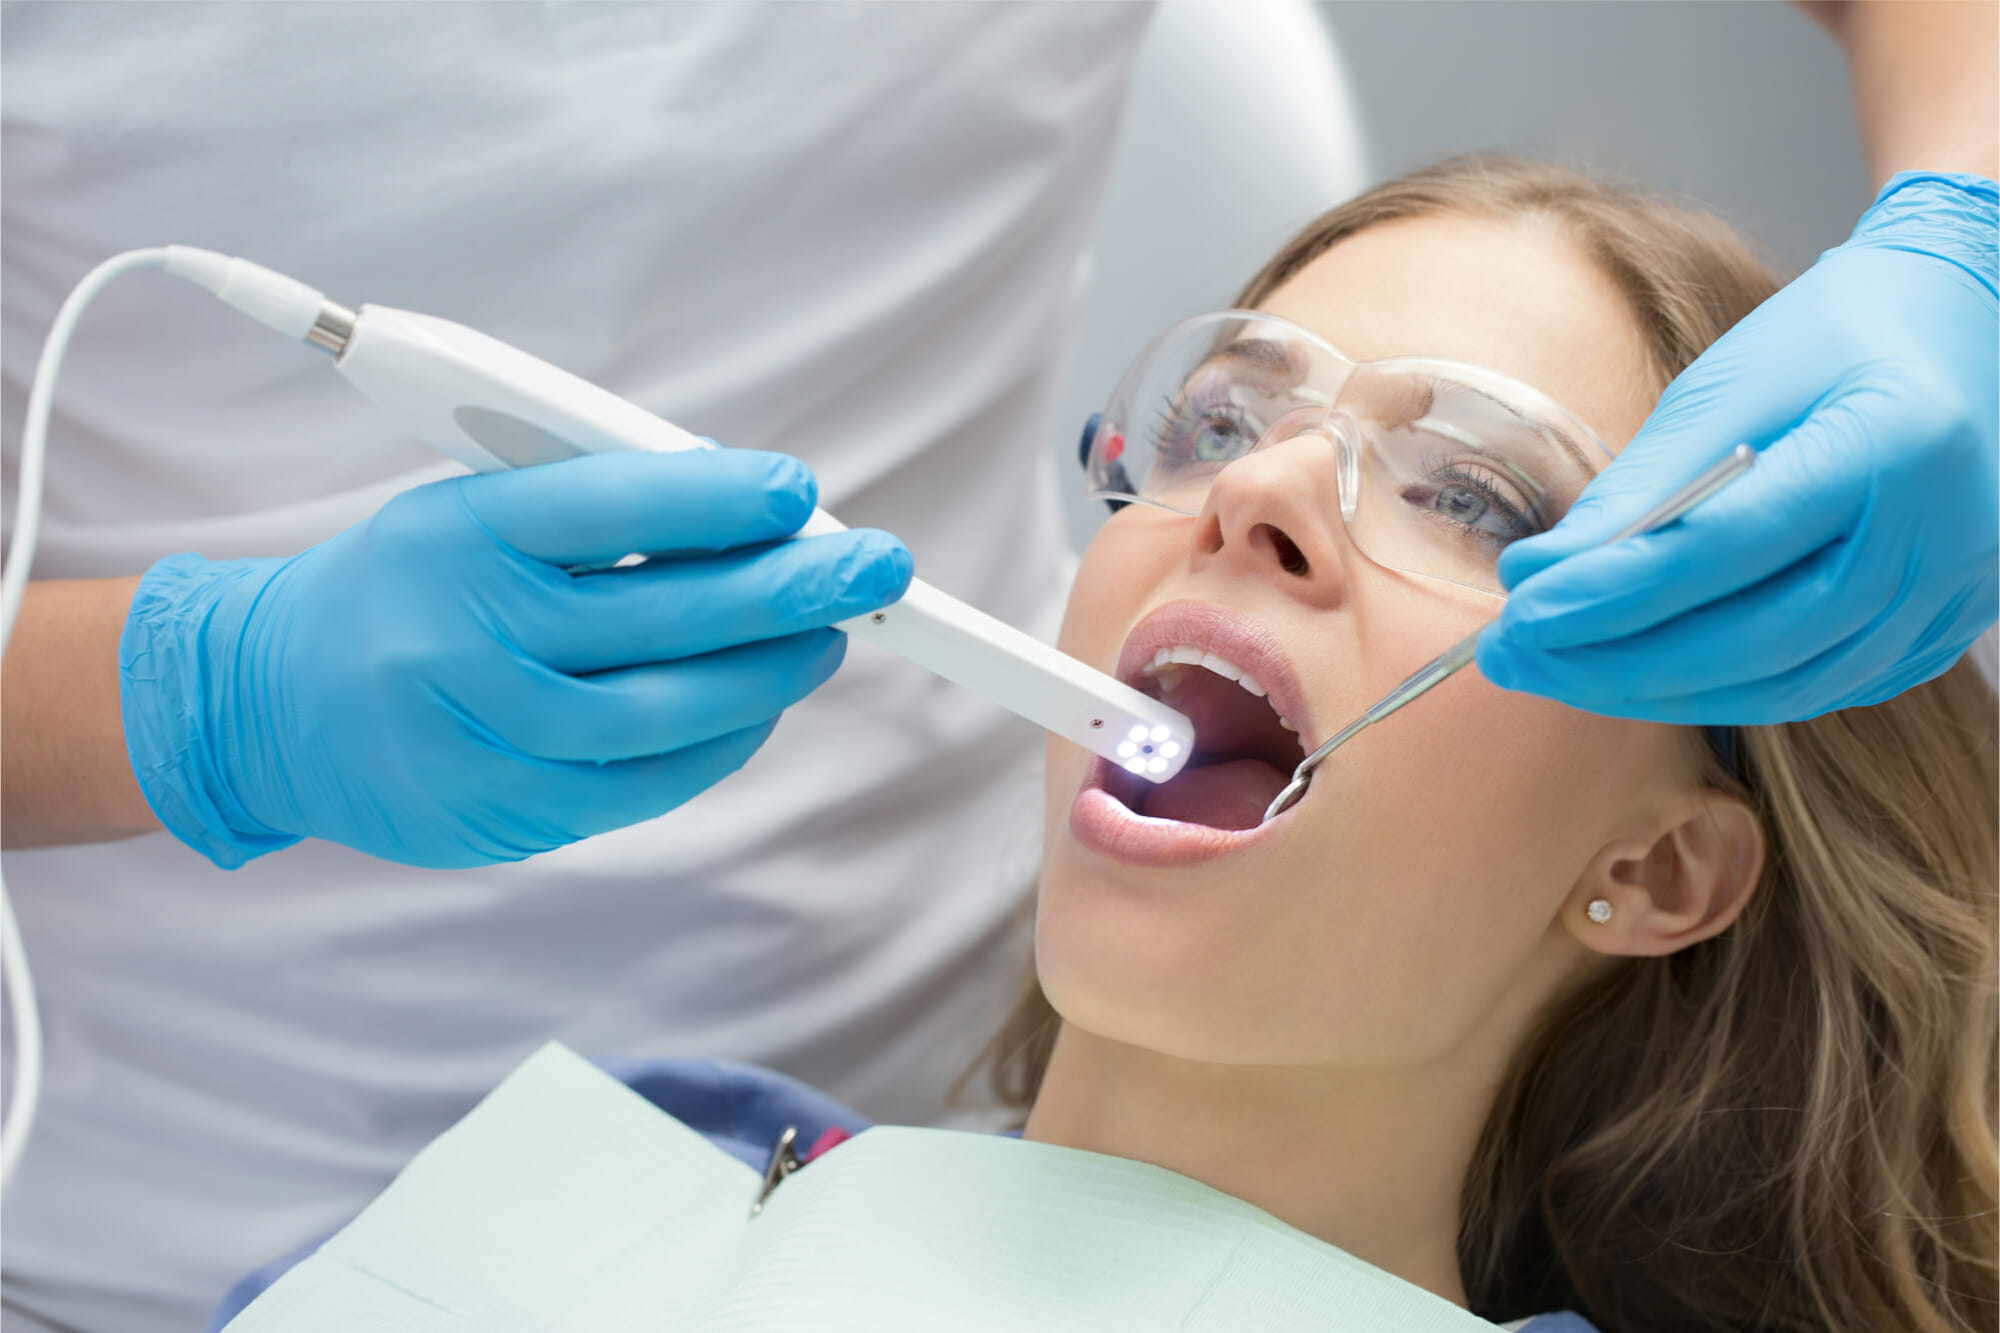 intra-oral camera in woman's mouth